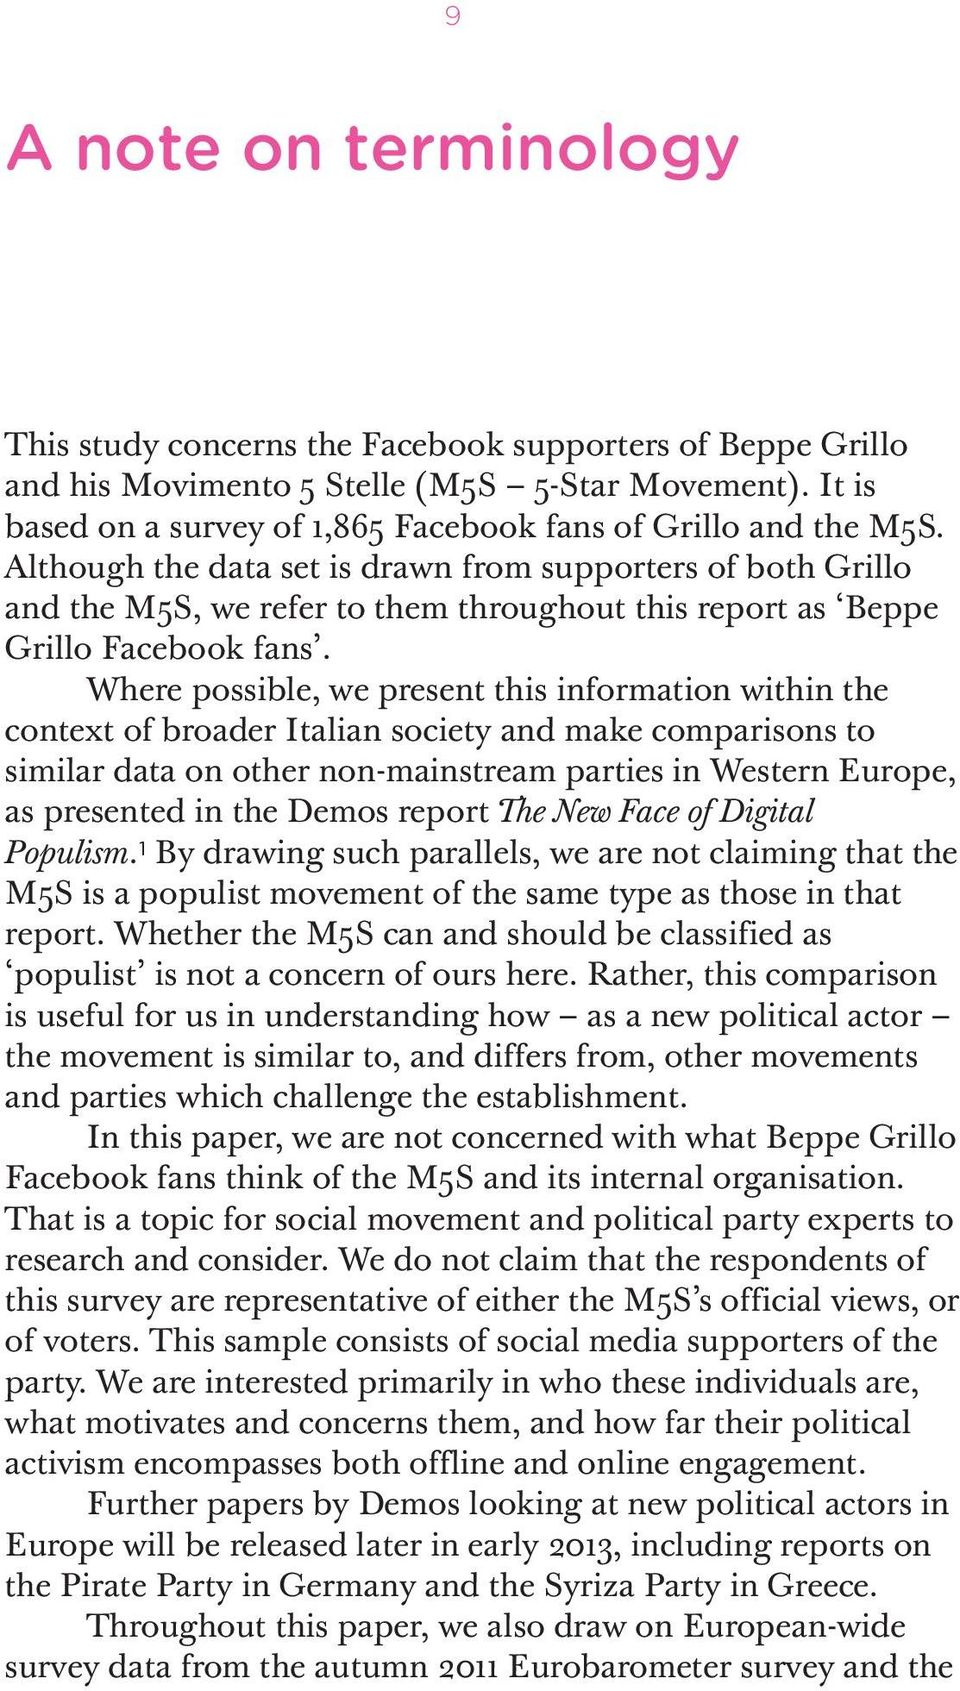 Although the data set is drawn from supporters of both Grillo and the M5S, we refer to them throughout this report as Beppe Grillo Facebook fans.